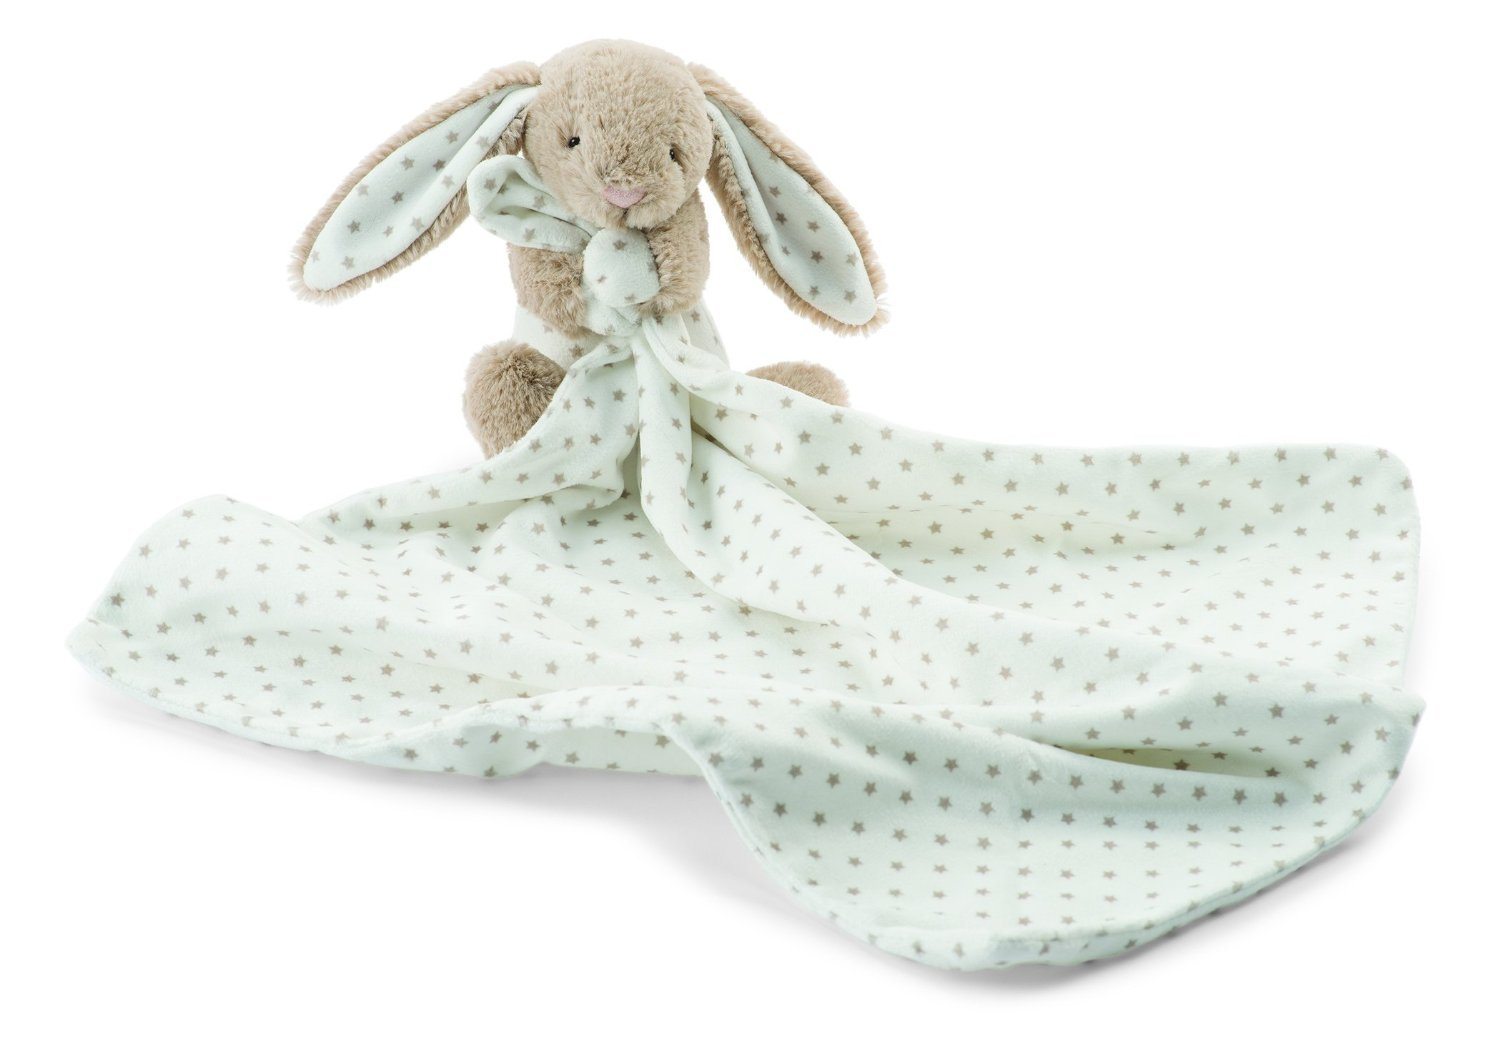 Jellycat Starry Bunny Soother STS4B